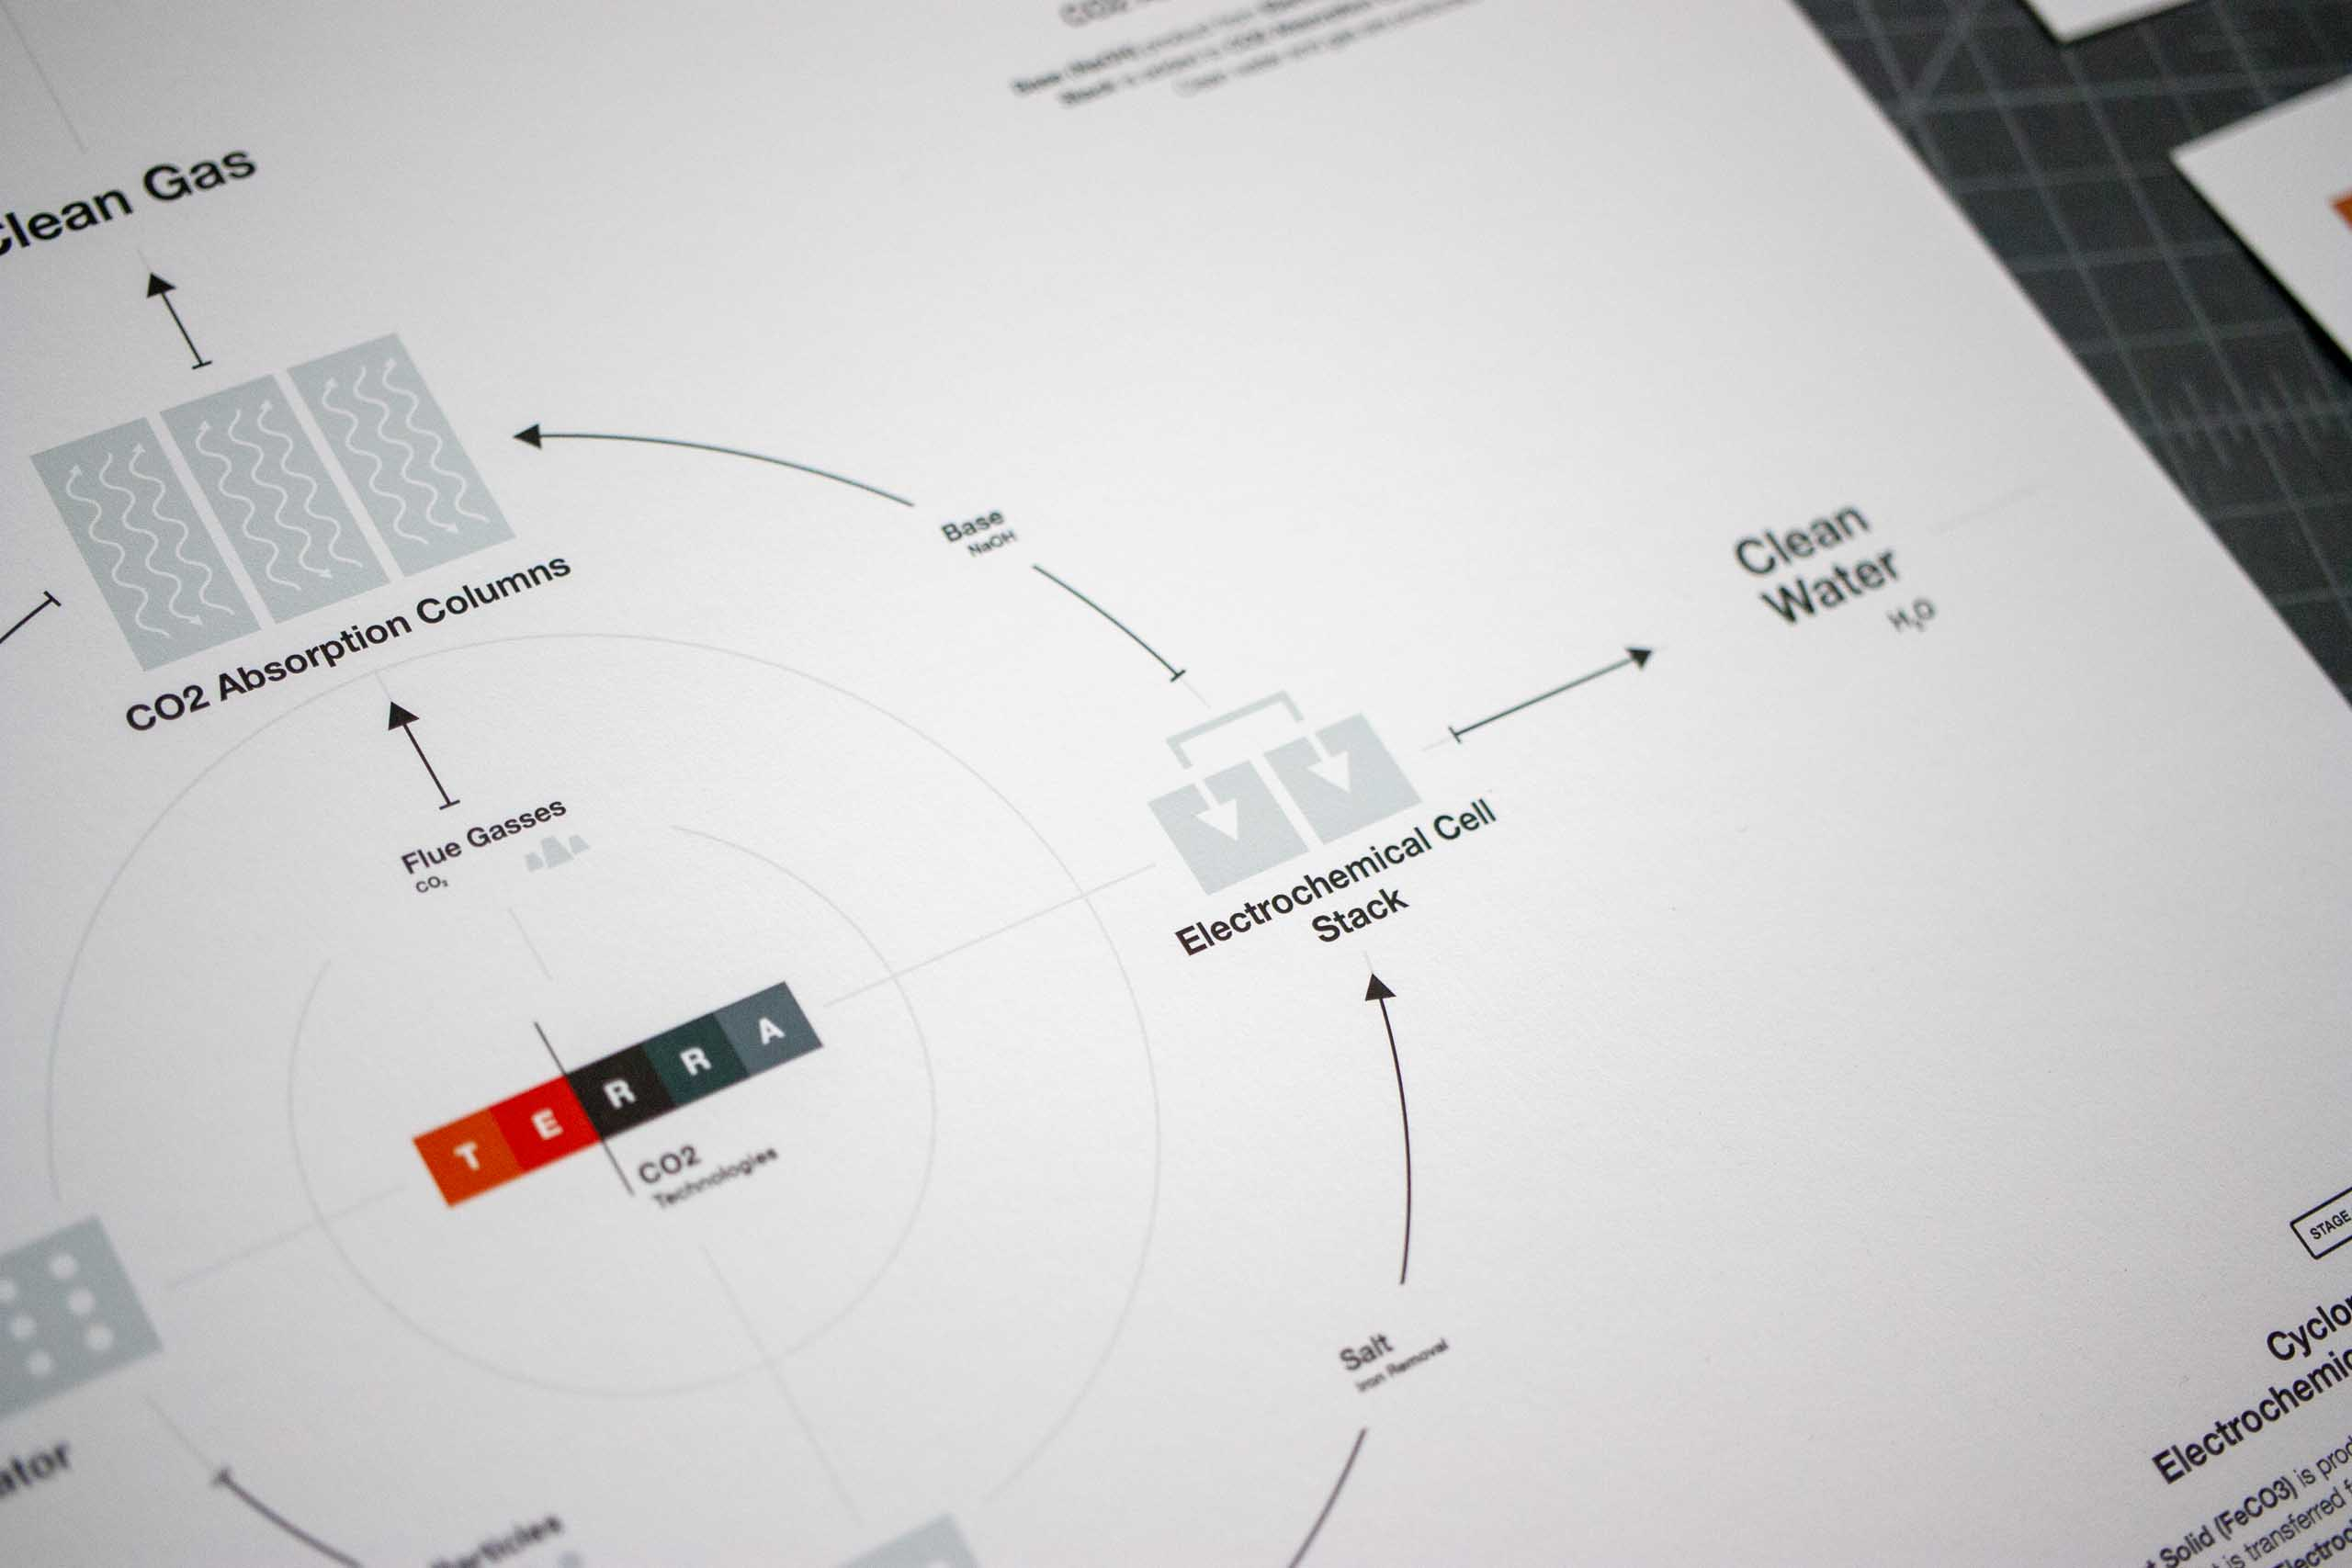 Photo focused on the center of the infographic with Terra CO2 logo in the middle of the process — by Yagnyuk.